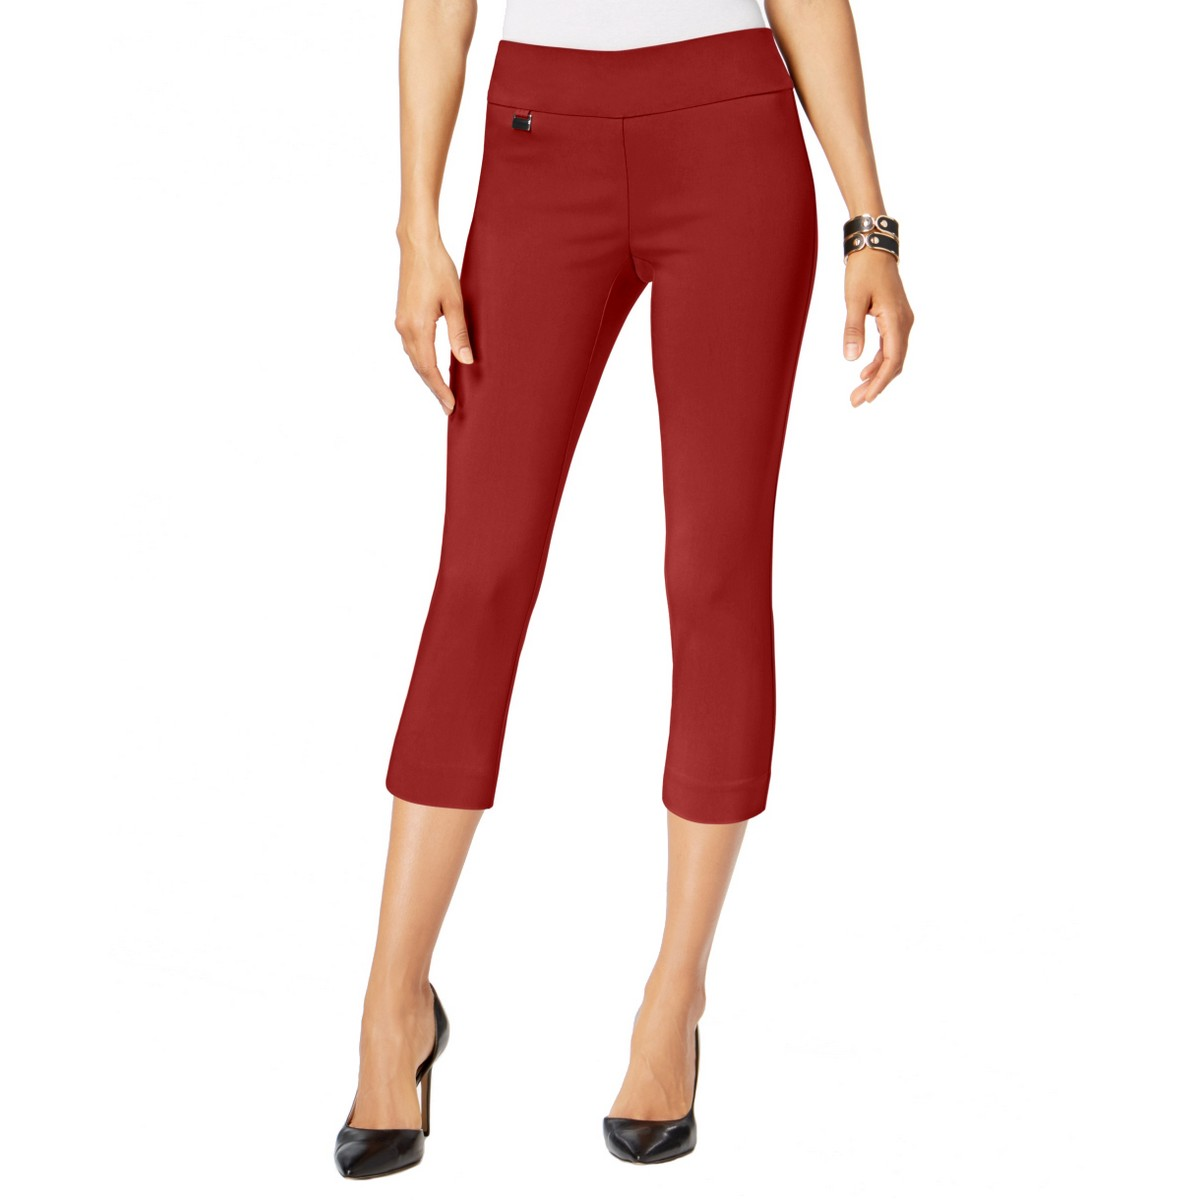 ALFANI NEW Women/'s Grey Tummy-control Pull-on Capris Cropped Pants TEDO